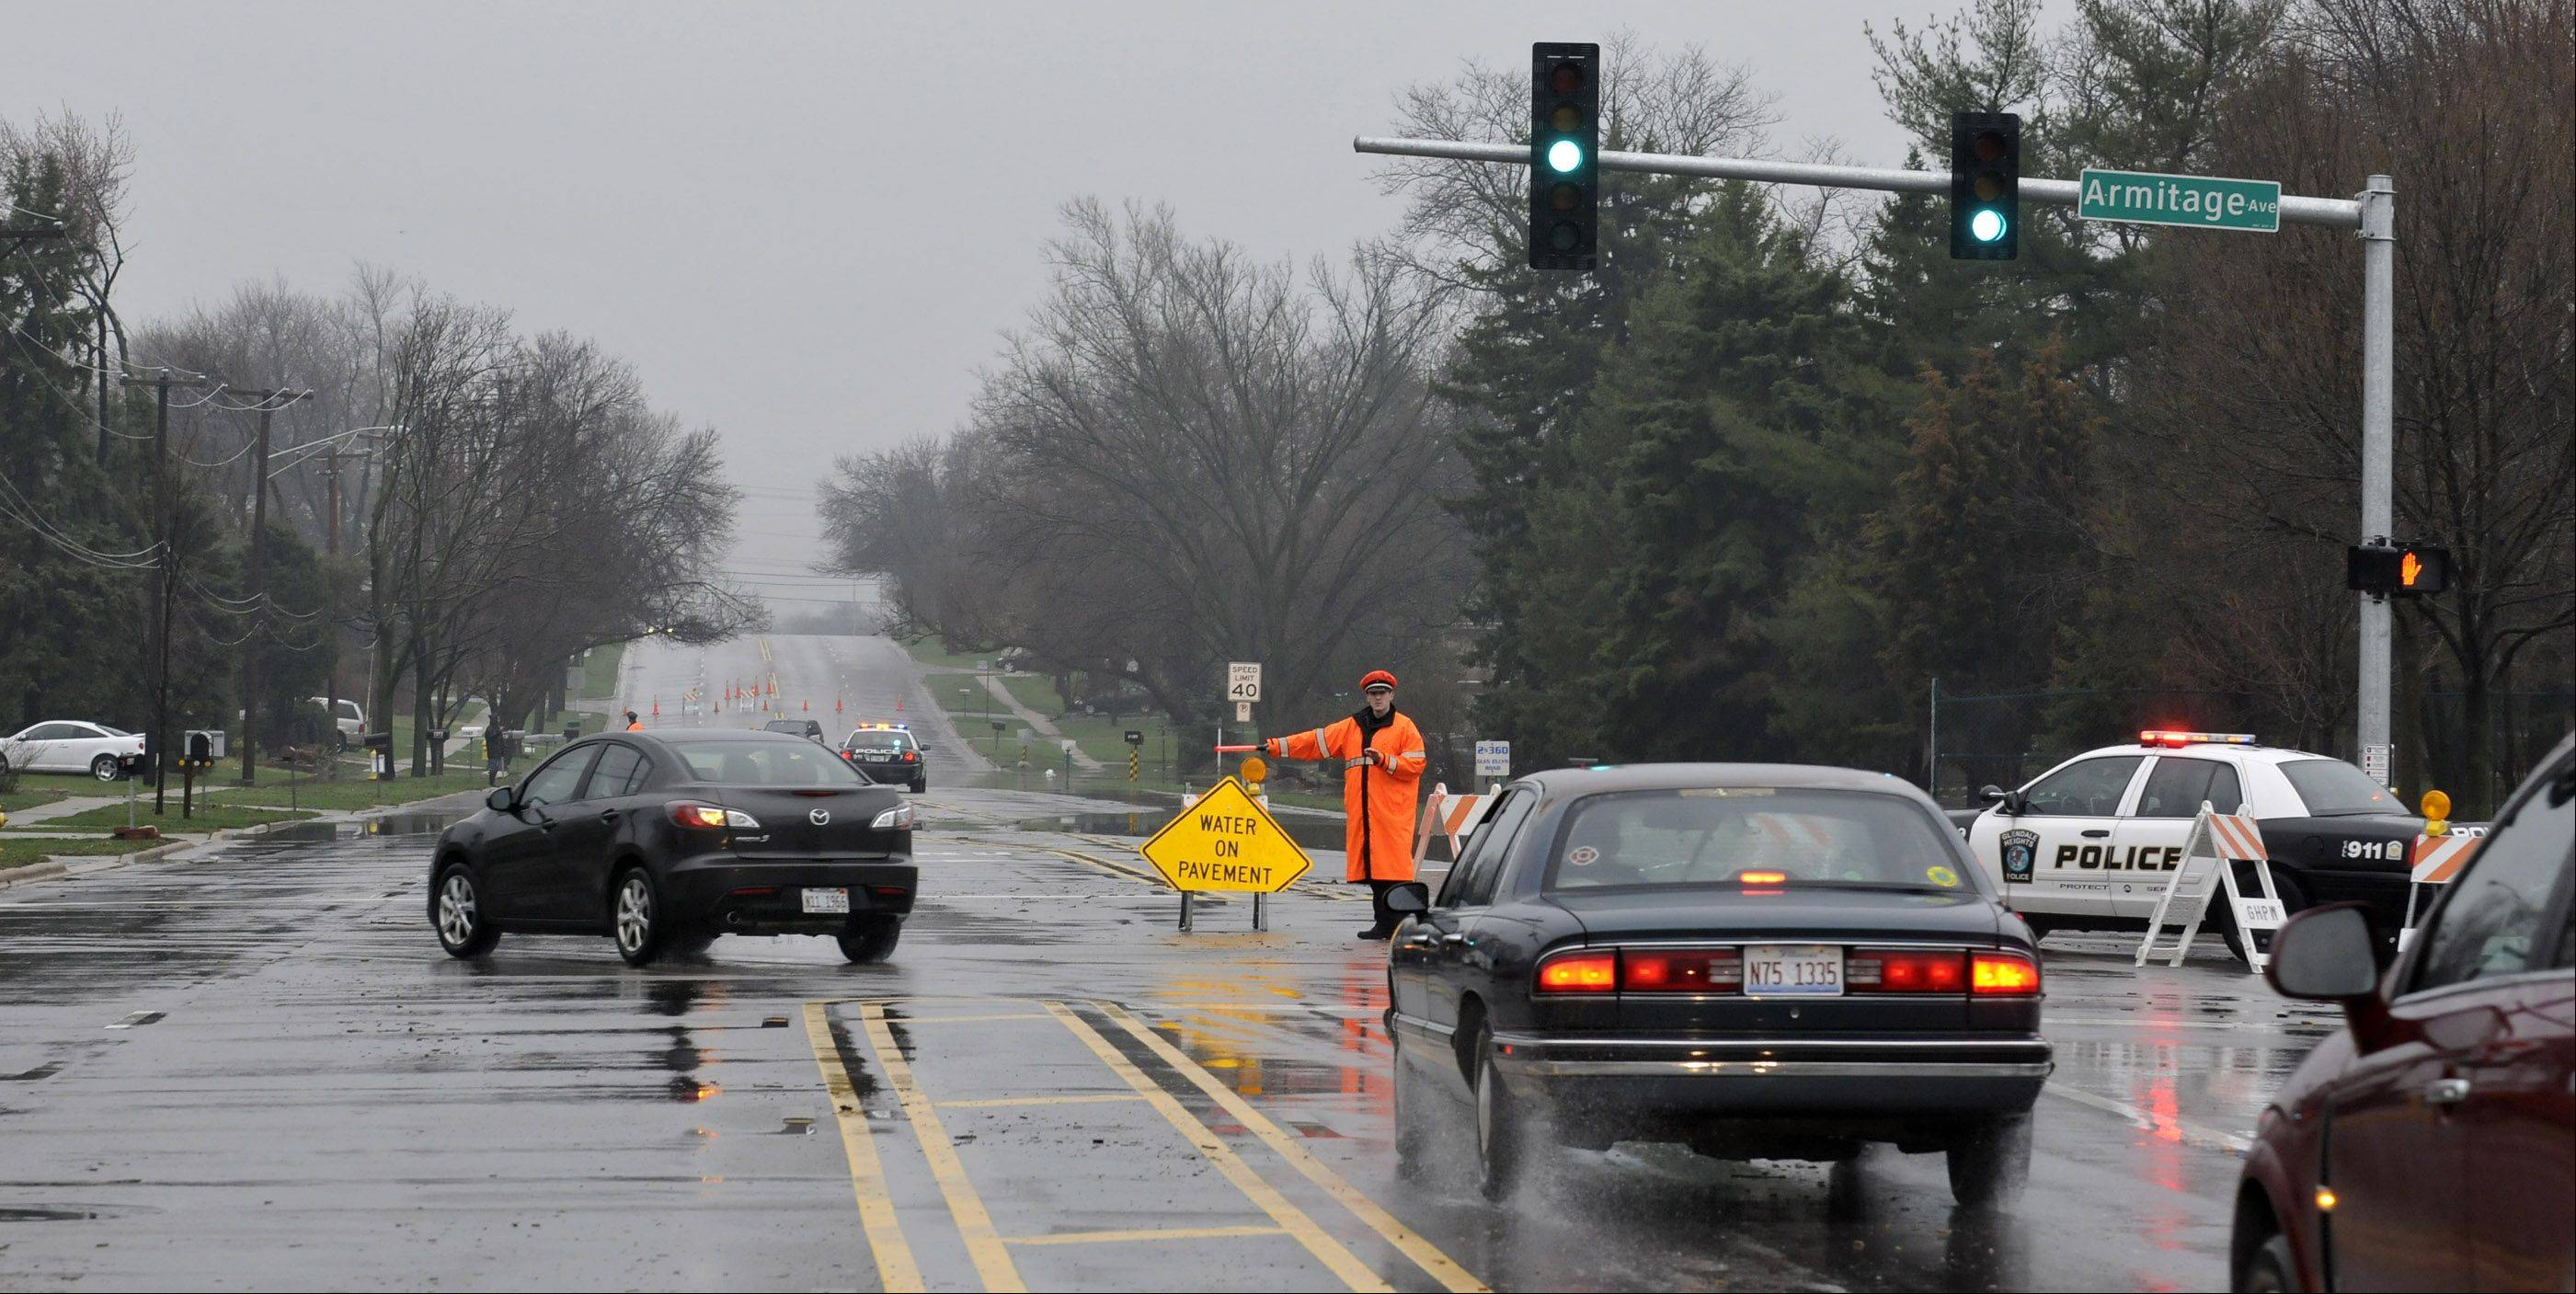 Police direct traffic off Glen Ellyn Rd. in Glendale Heights at Armitage. Heavy rains overnight resulted in heavy flooding in the DuPage County area.